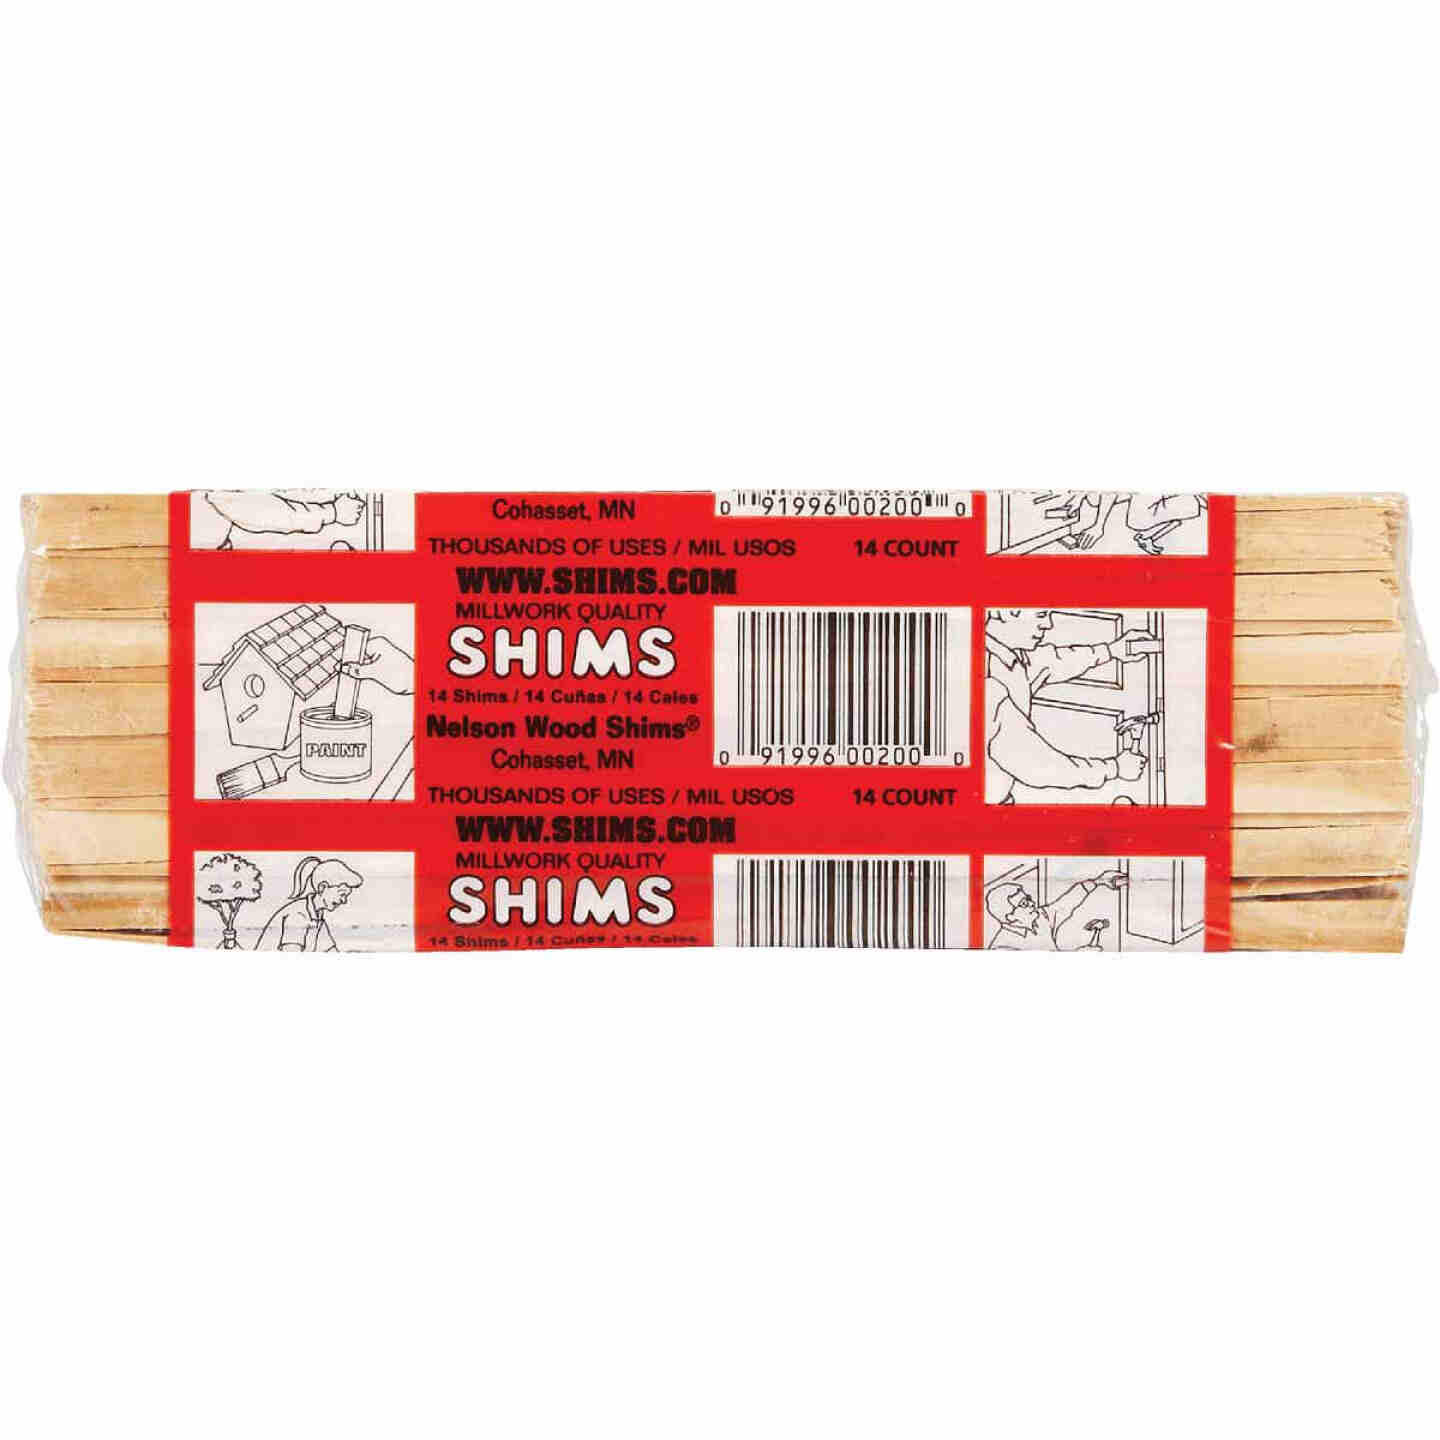 Nelson Wood Shims 8 In. L Wood Shim (12-Count) Image 2